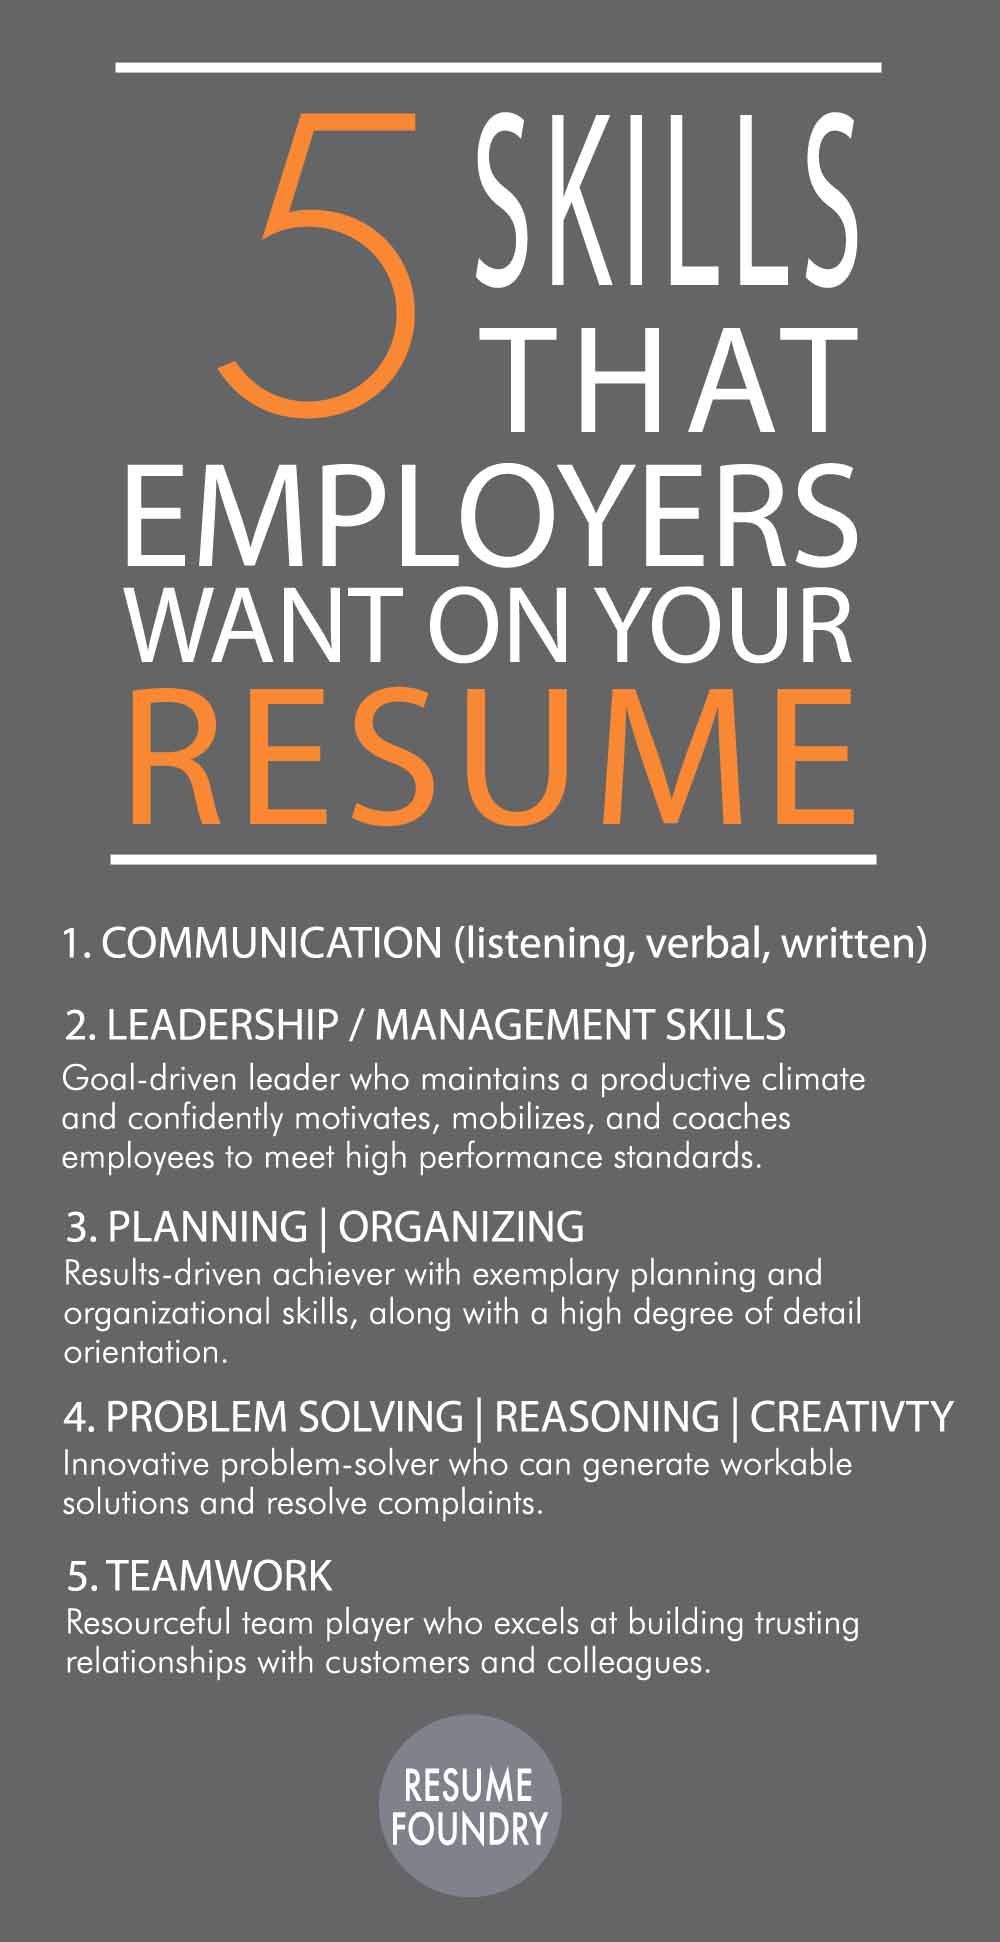 Skills For Job Resume 5 Skills That Employees Want On Your Resume  Job Inspiration